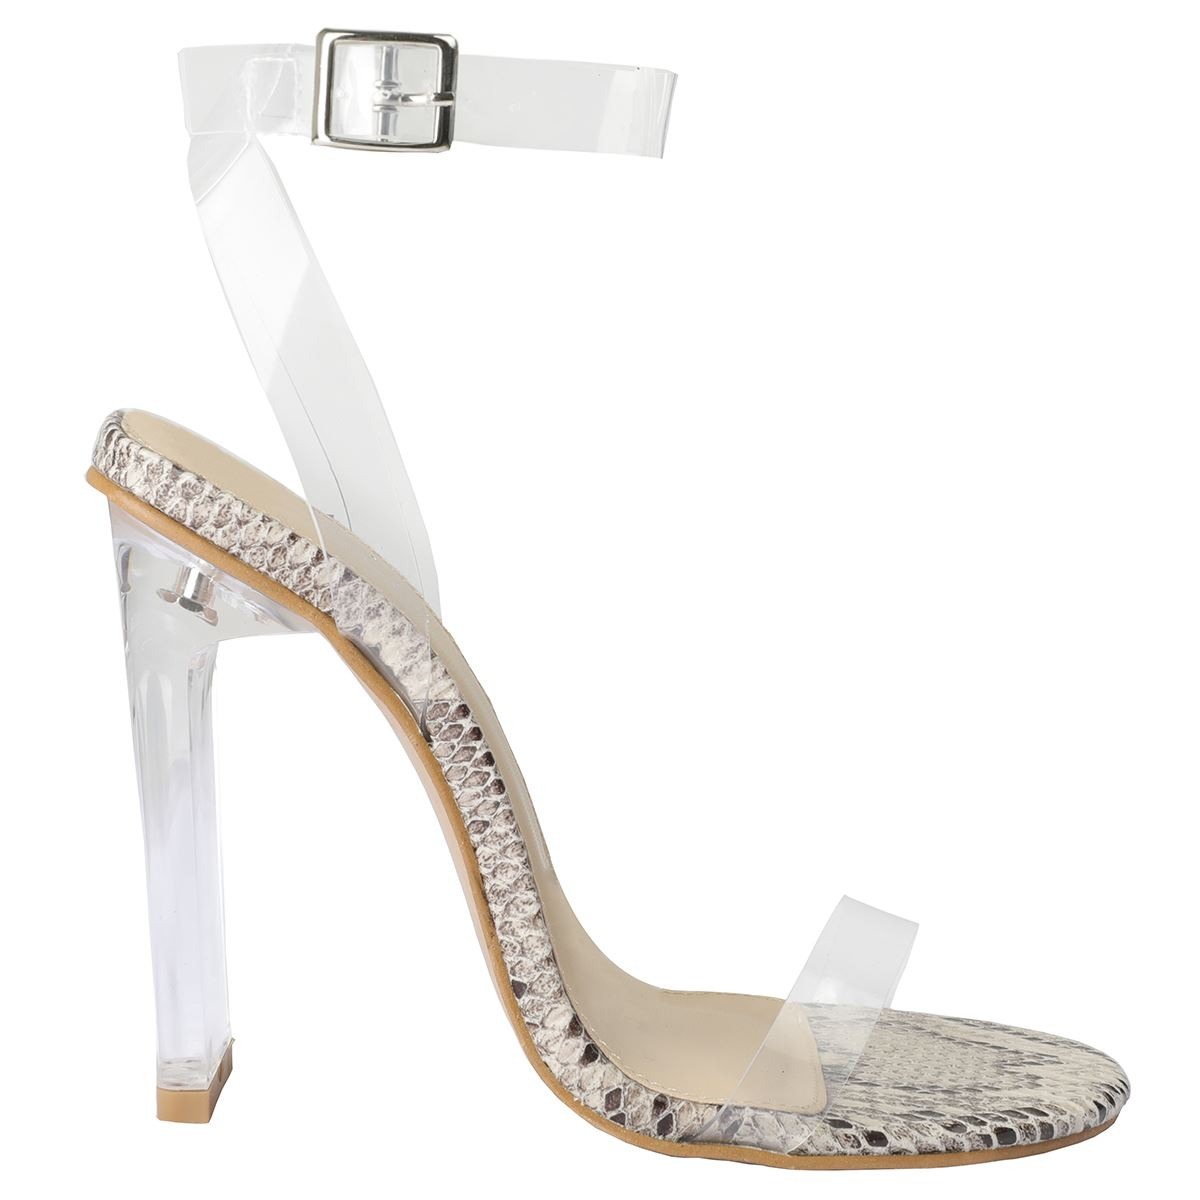 27d017b598e New Womens High Heel Nude Black Perspex Clear Strappy Party Sandals ...